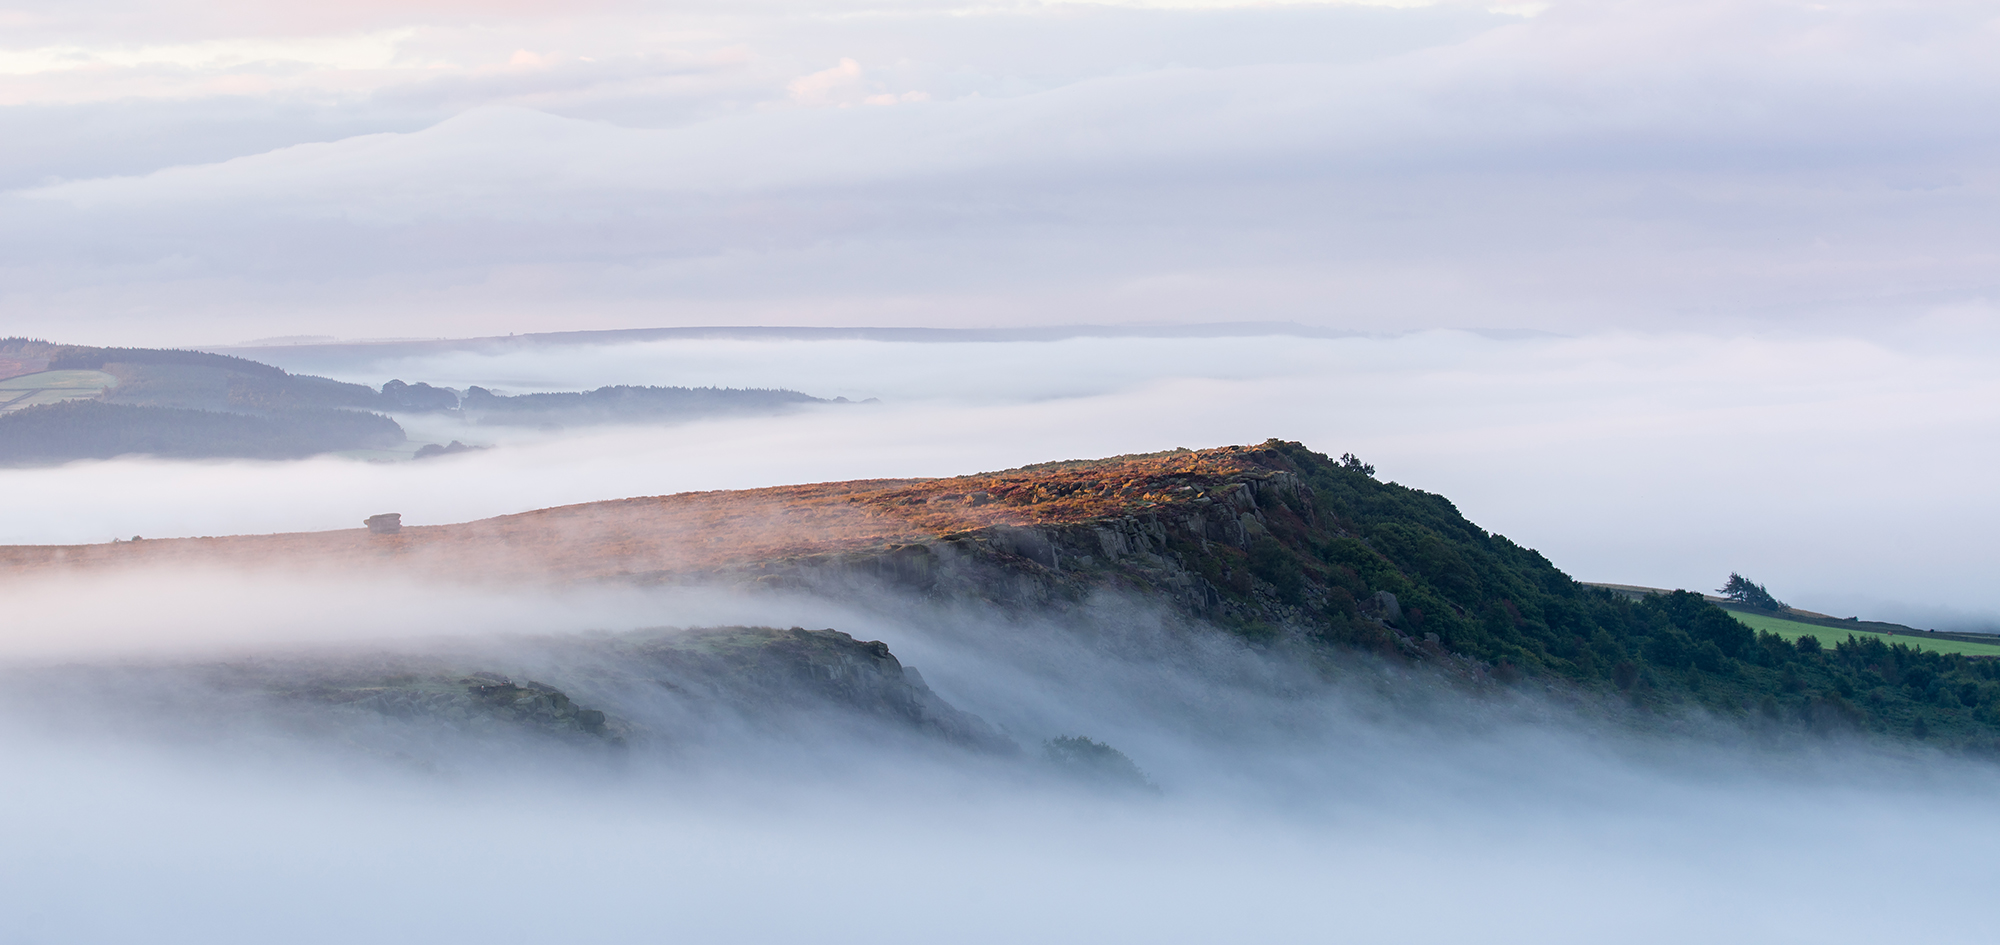 From Curbar looking across to Baslow Edge. Sony A7r, Canon EF 70-200mm f/2.8 at 98mm ISO 100, 1/13s at f/11. Tripod. 6.24am, August 16th, 2016. © Andrew Yu